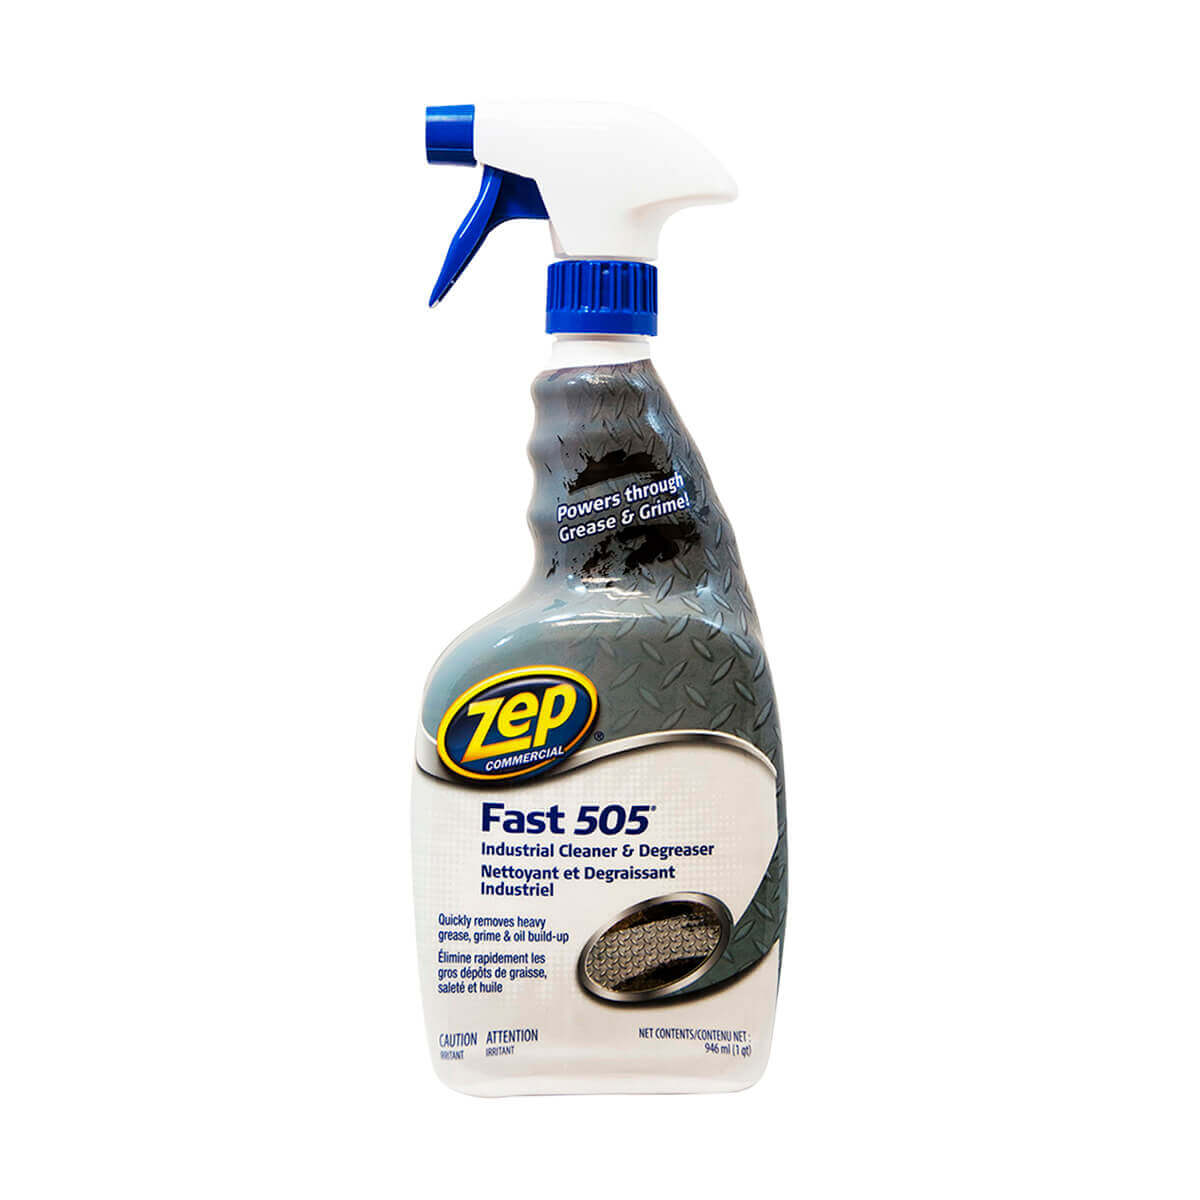 Zep Commercial Fast 505 Industrial Cleaner & Degreaser 946 ml  - CN50532